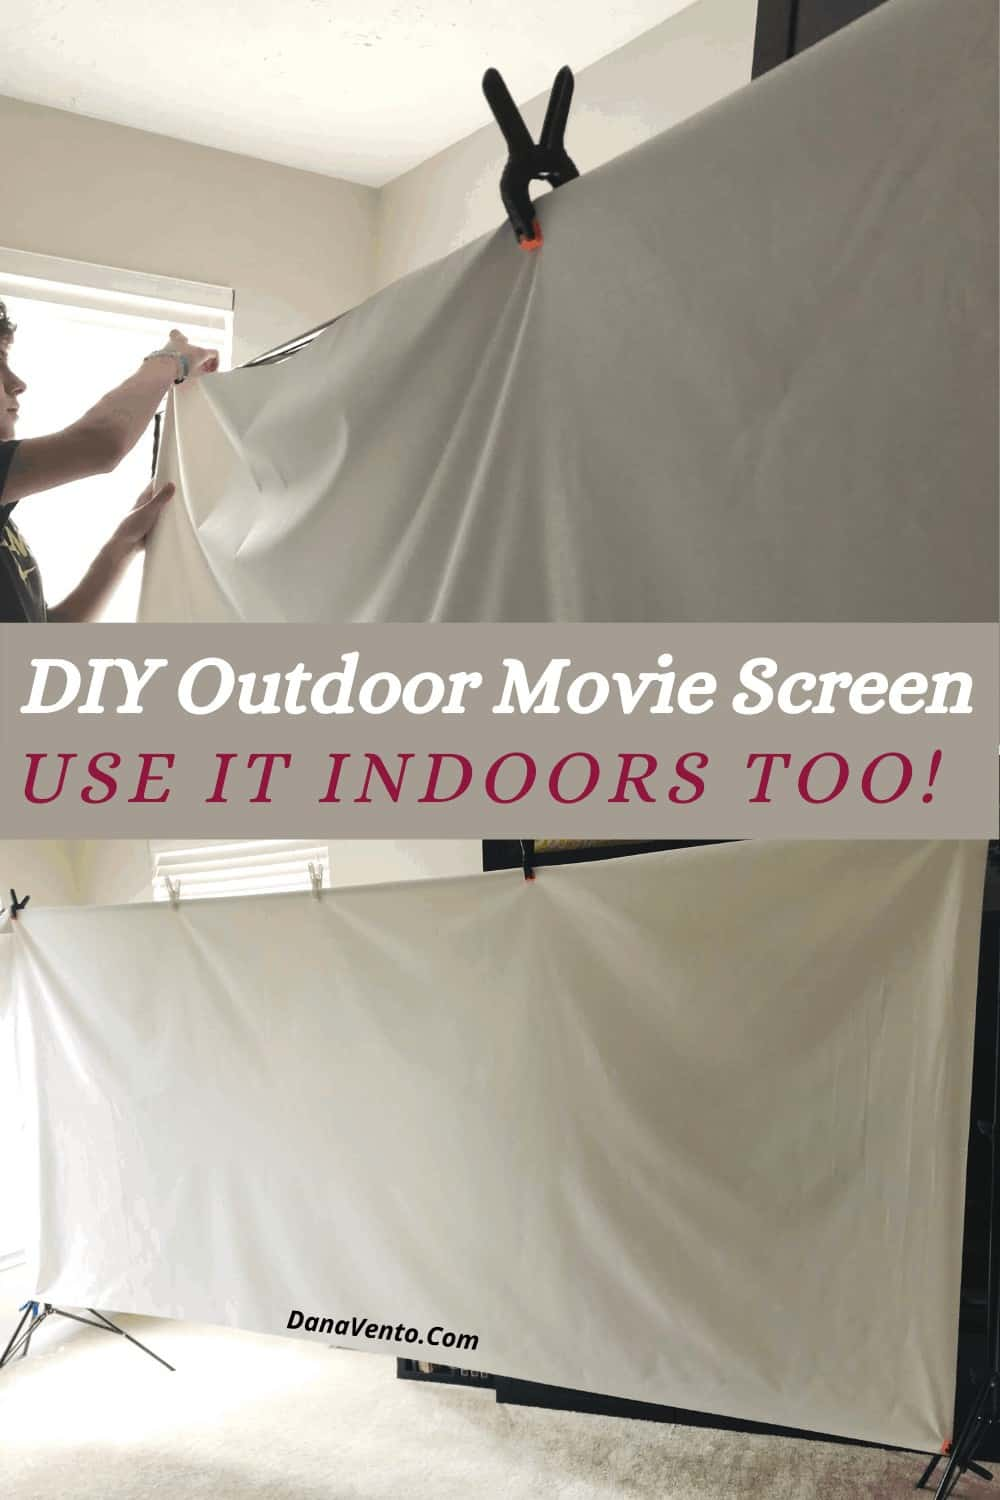 Clipping DIY Movie screen to frame